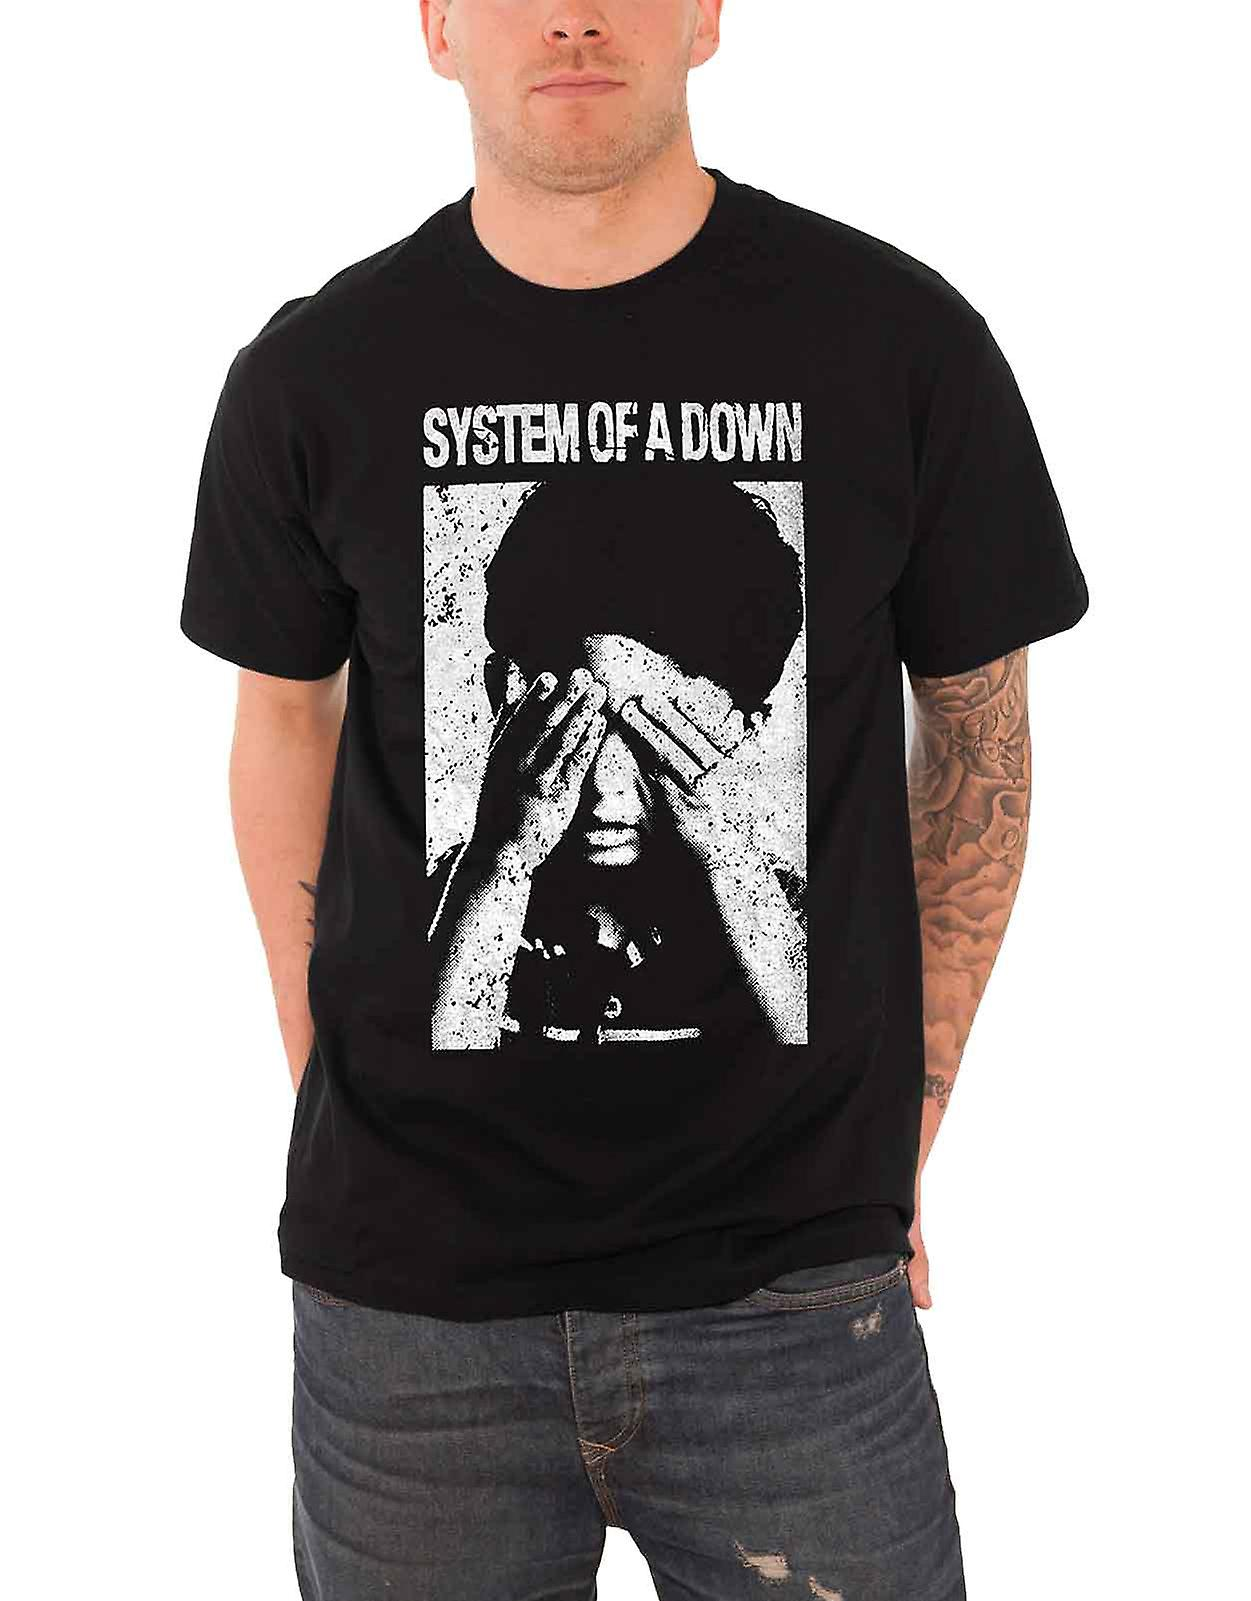 System of a Down T Shirt See No Evil Band Logo Contrast Official Mens New Black